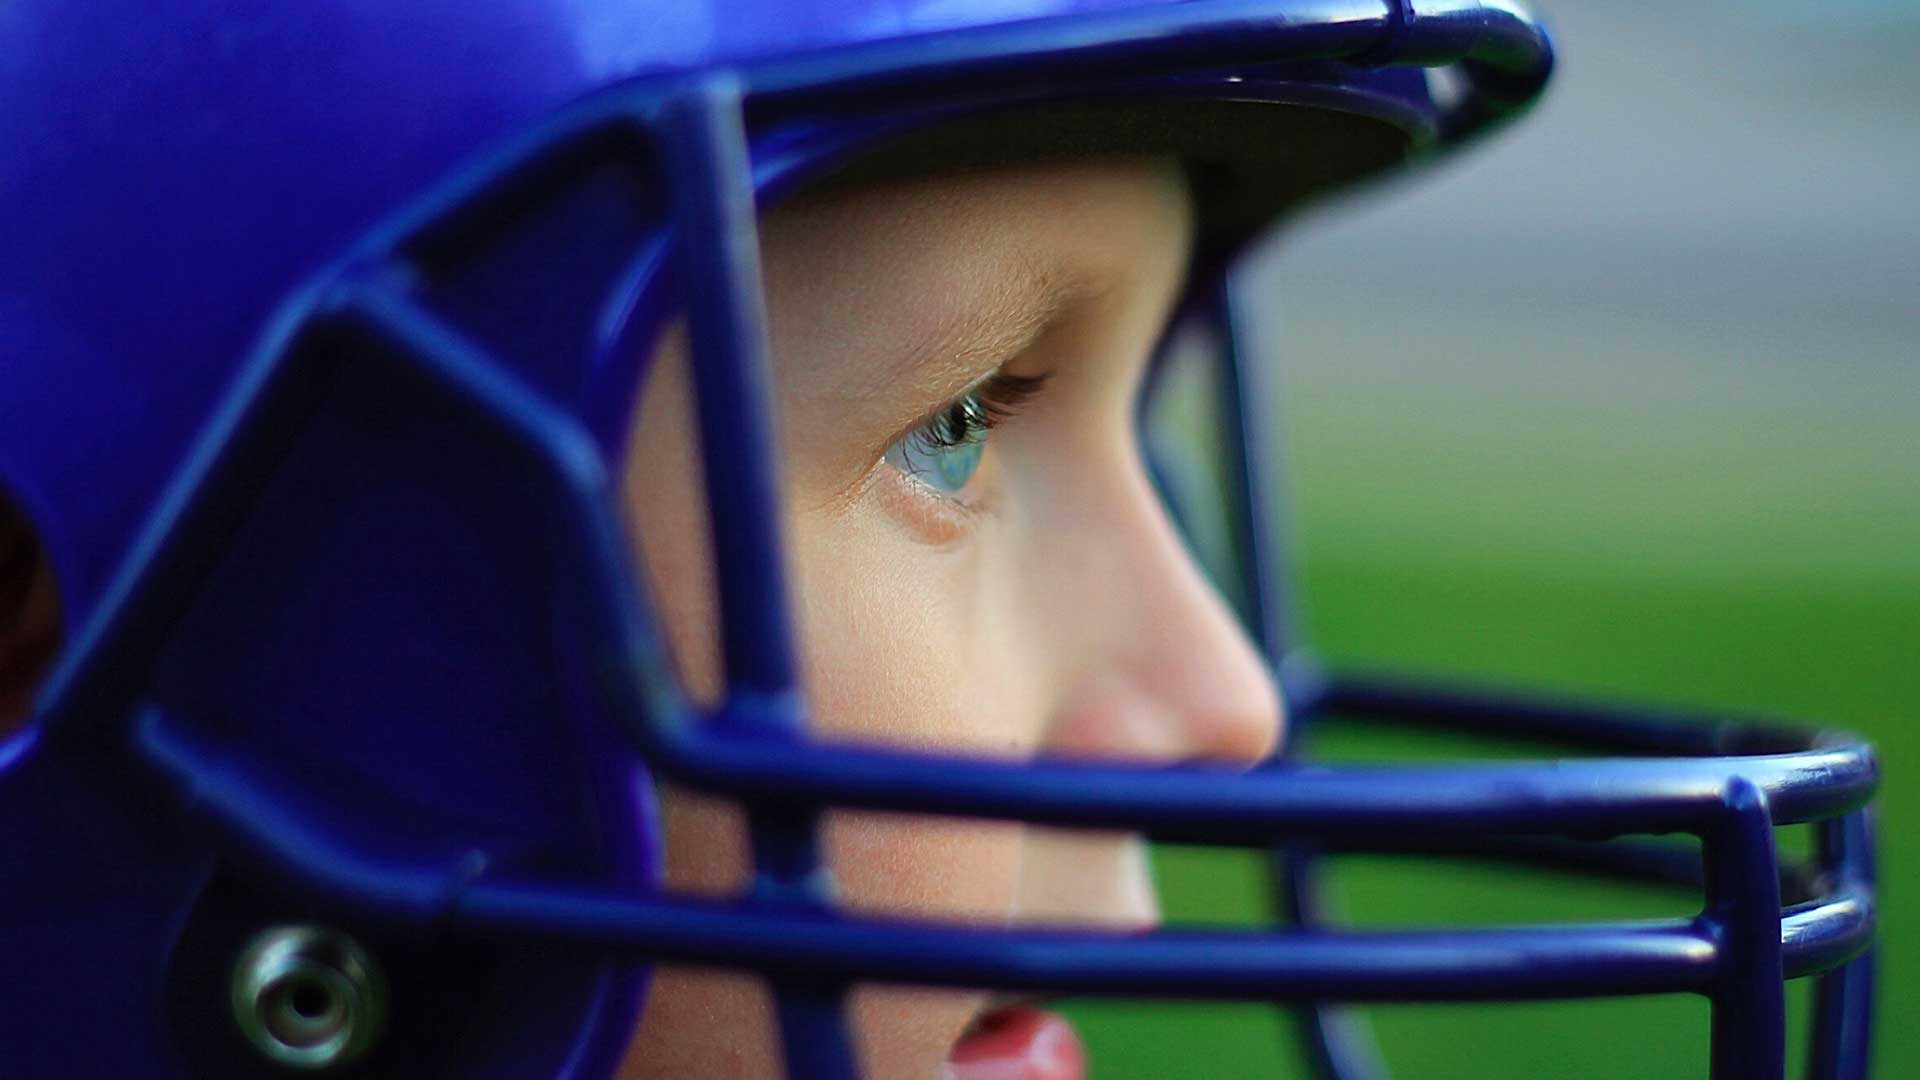 Child-With-Bright-Future-Instead-Becomes-Vikings-Fan.jpg